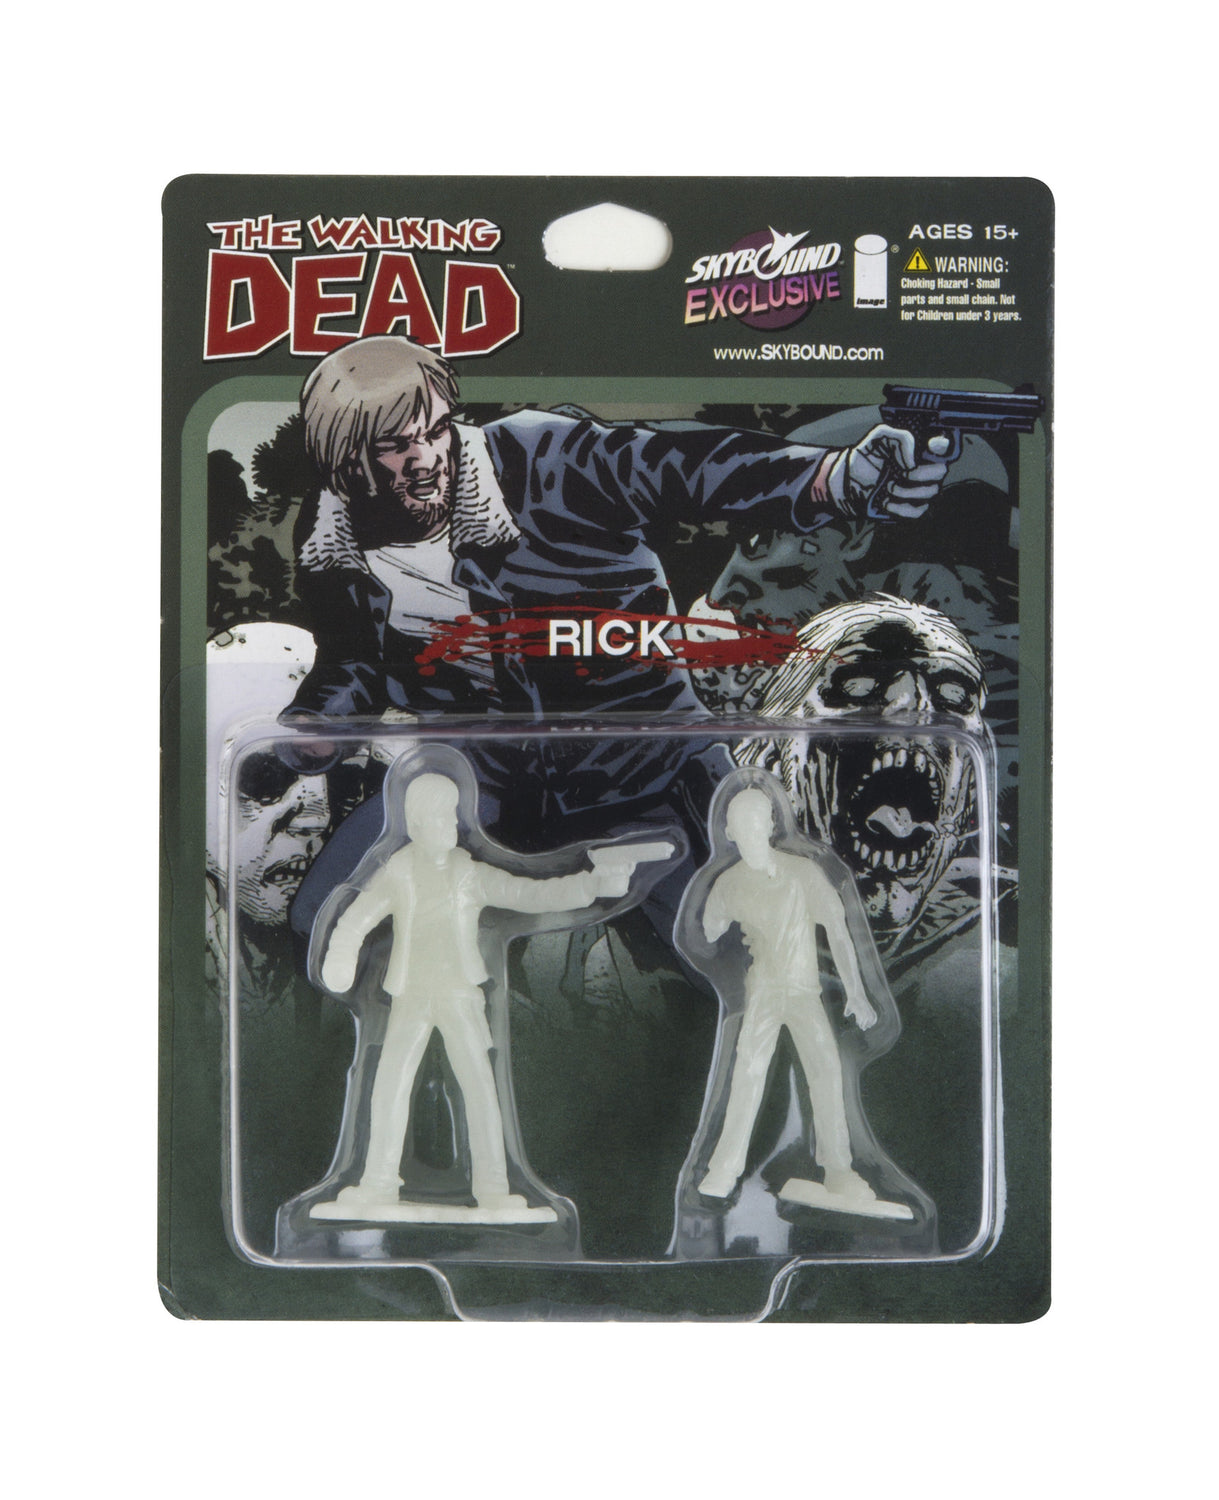 THE WALKING DEAD - Rick PVC Figure (Glow in the Dark)